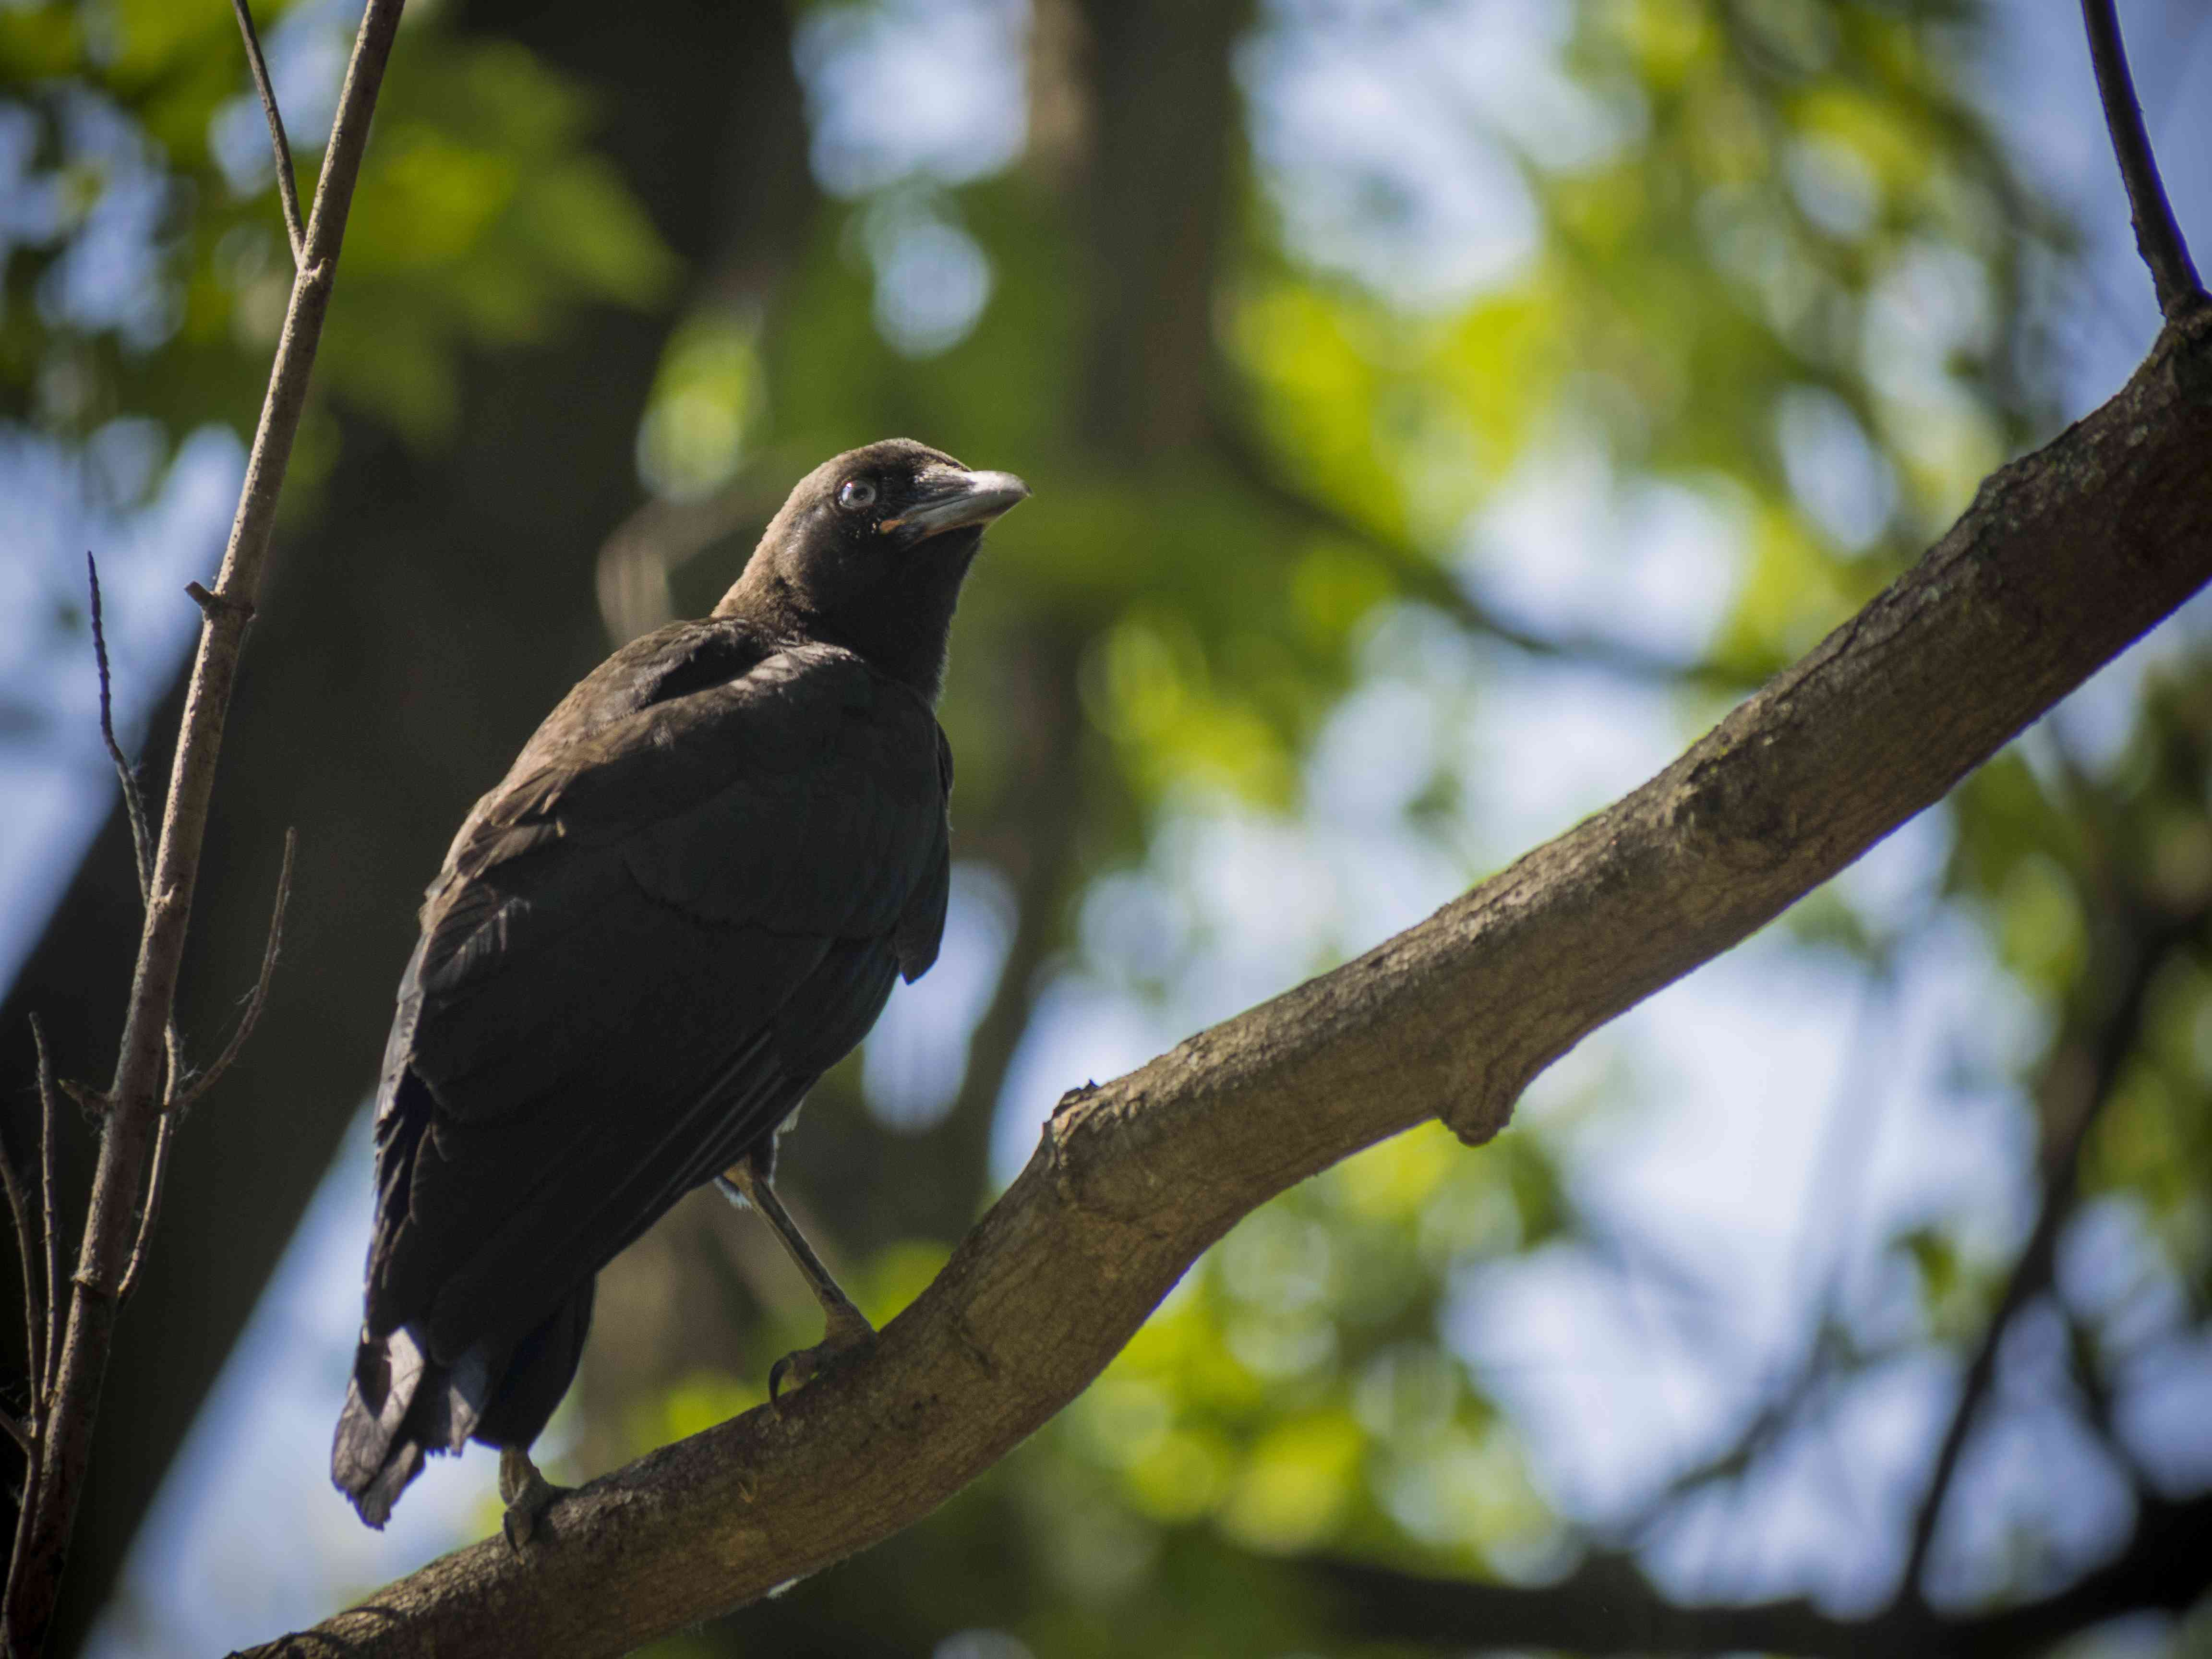 juvenile American crow perched in a tree